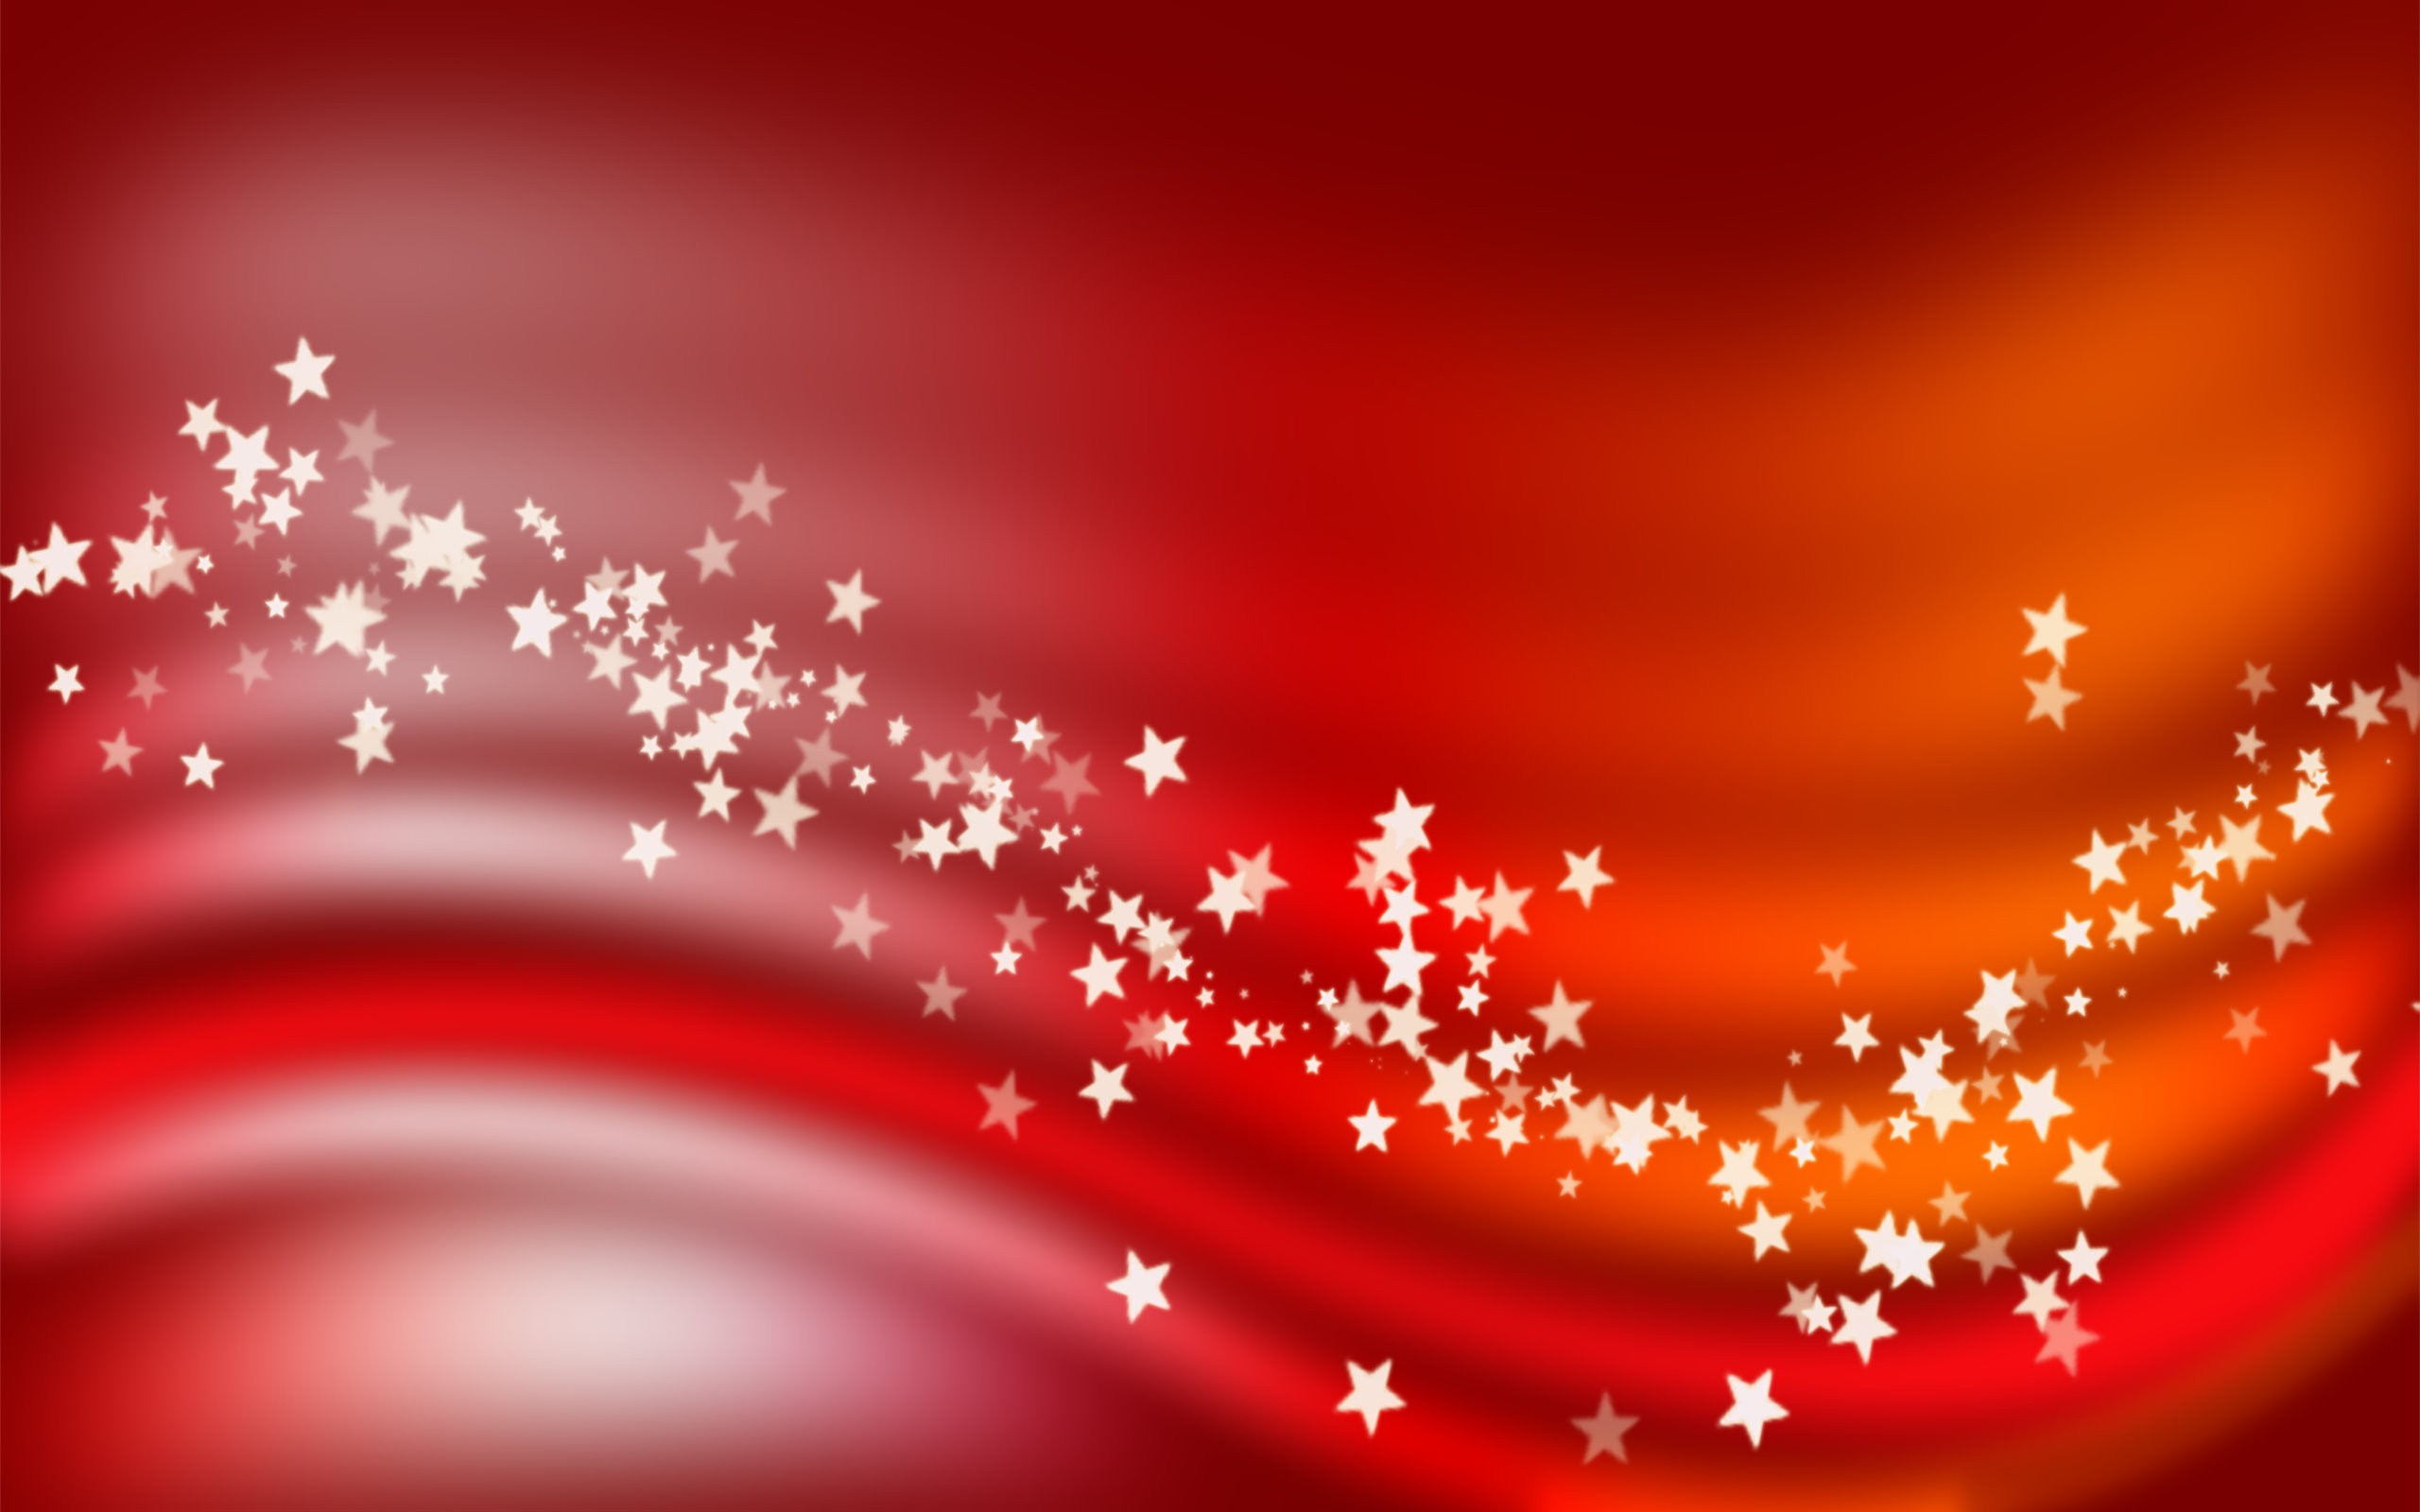 red christmas background ·① download free hd wallpapers for desktop